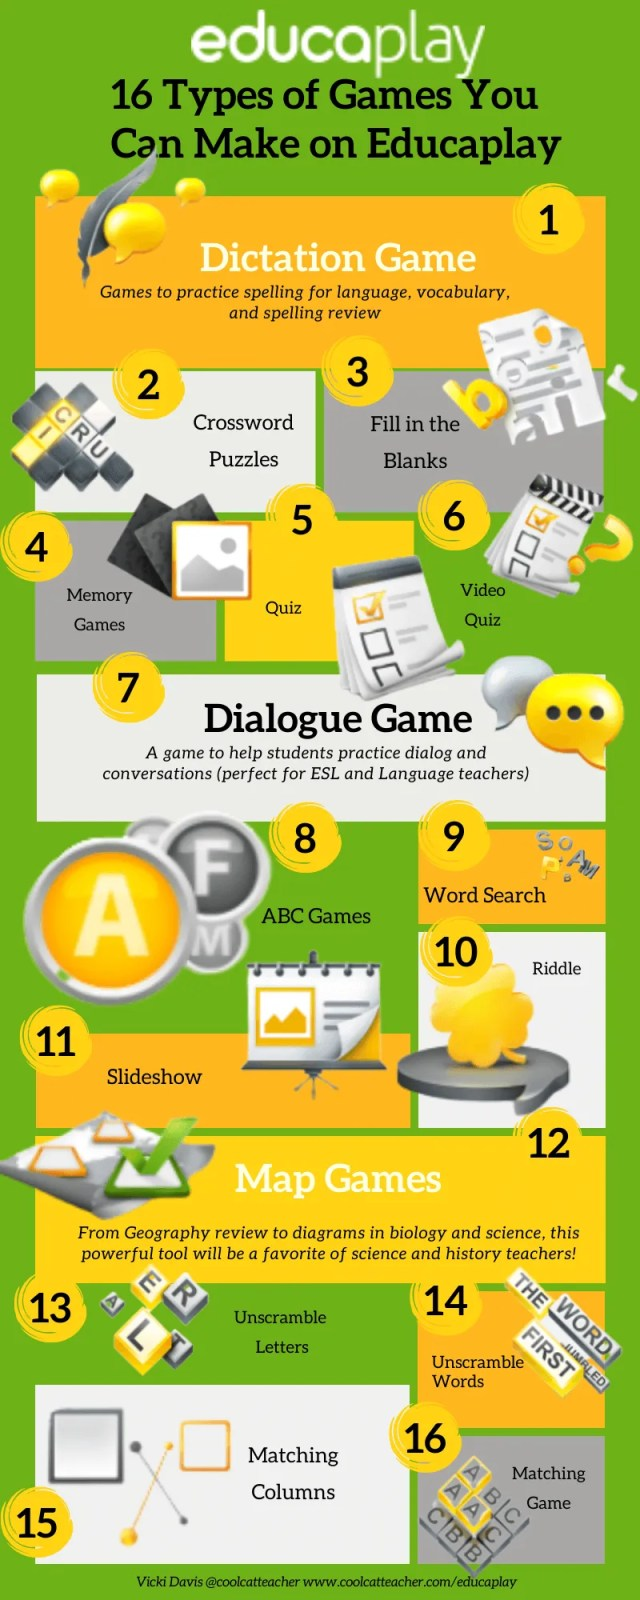 16 ways to make classroom games with educaplay